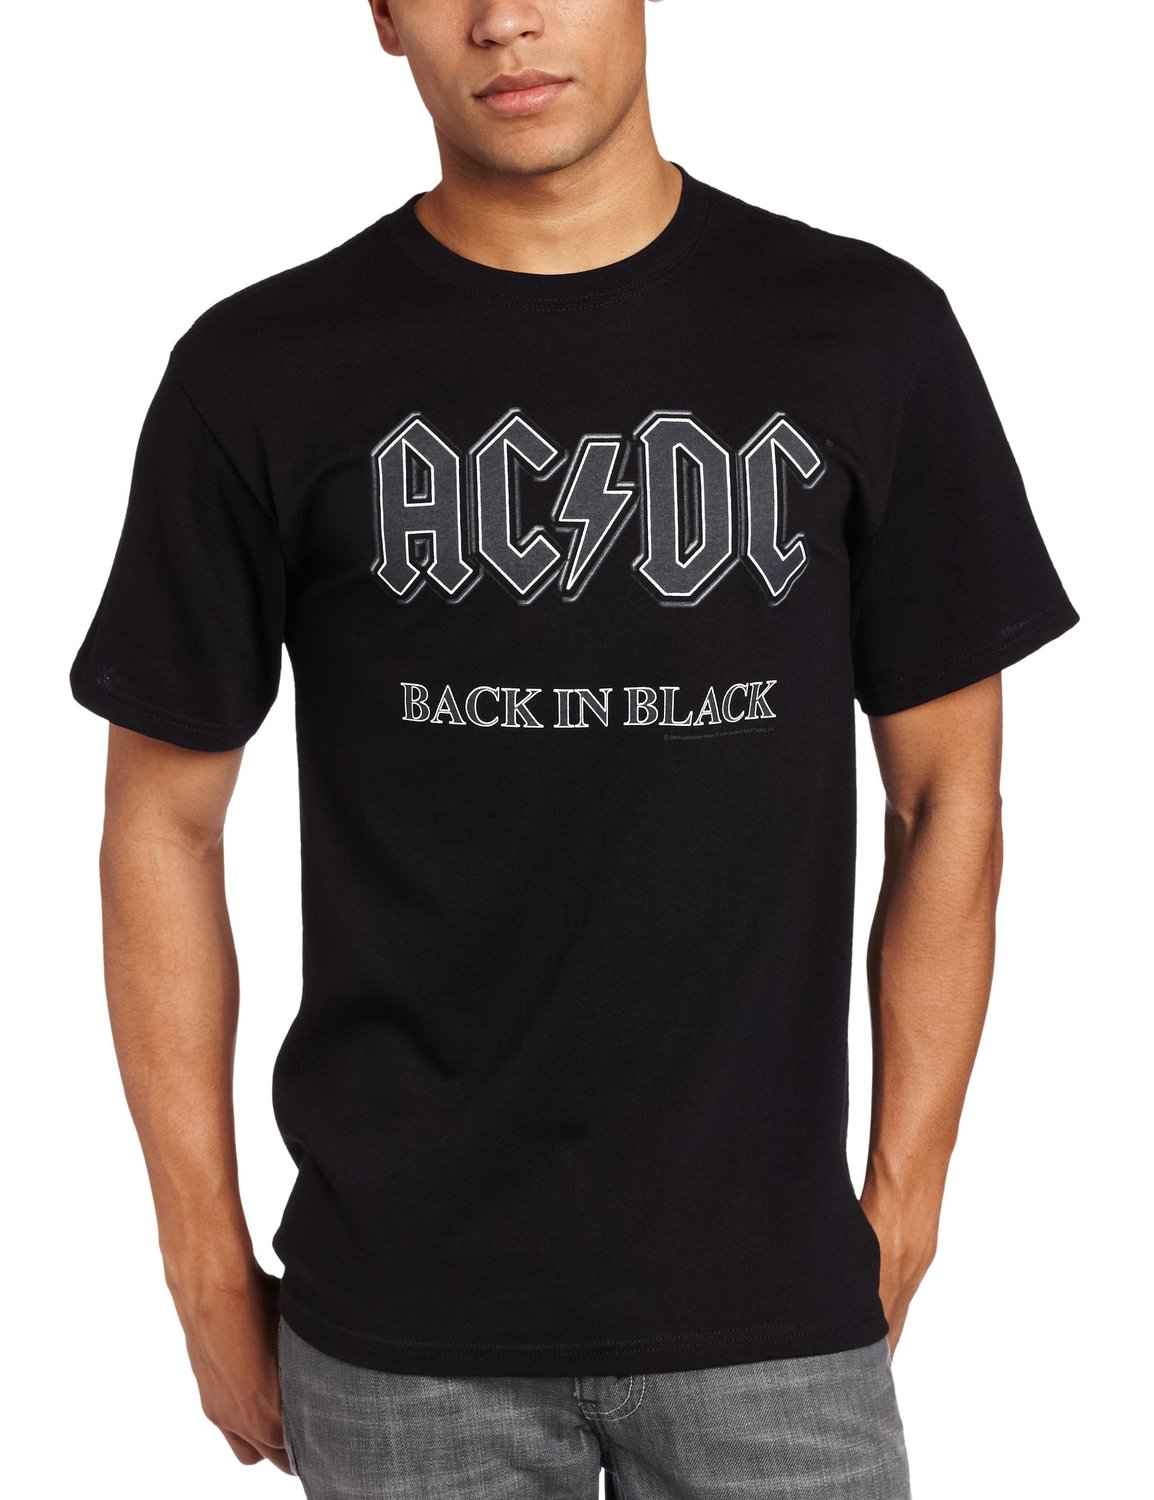 Impact Men's AC/DC Back In Black Short Sleeve T-Shirt at Amazon Men's Clothing store: Fashion T Shirts